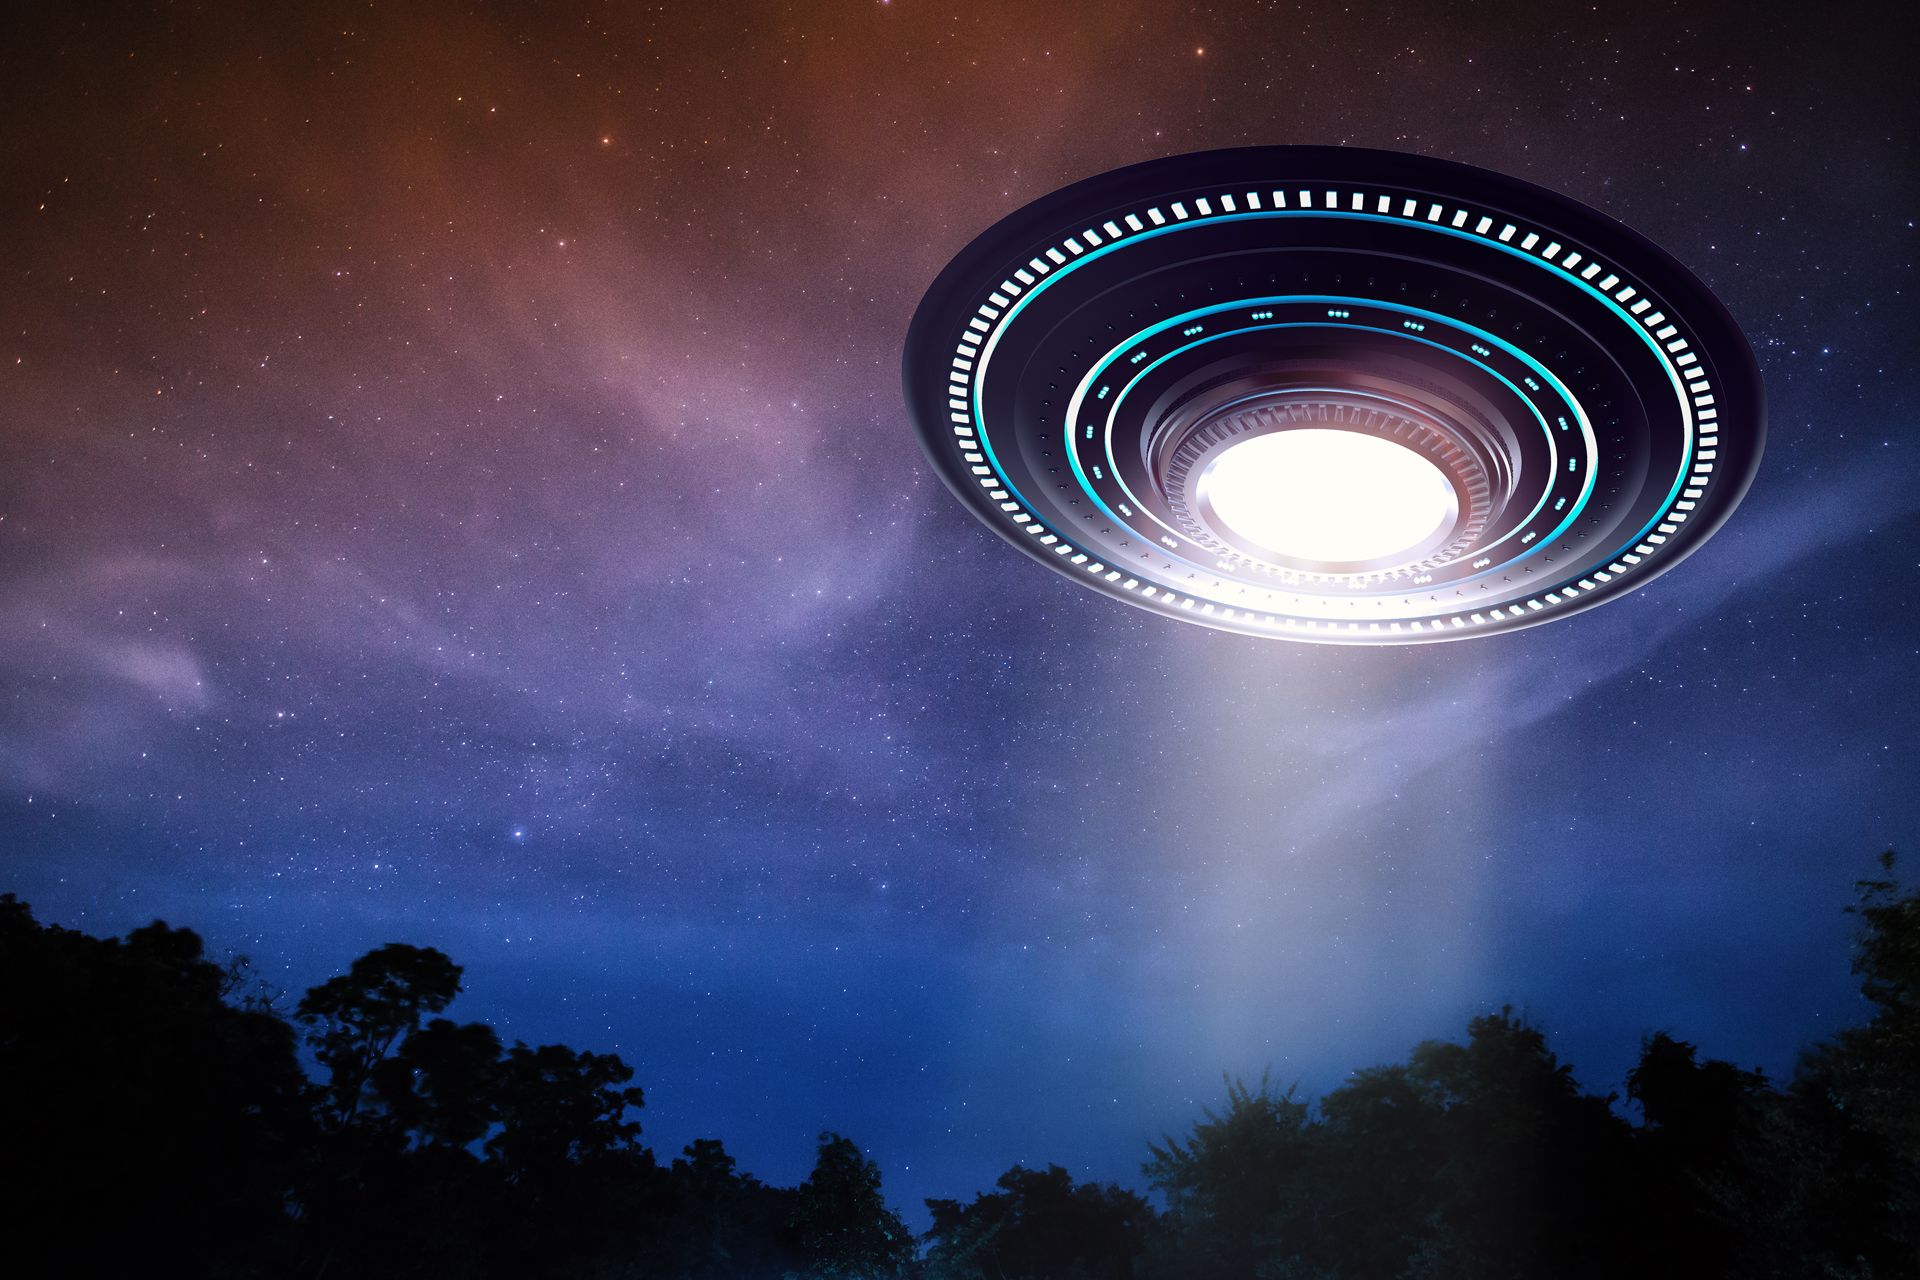 Westlake Legal Group UFOiStock GOP lawmaker says he's 'concerned' over reported UFO sightings by Navy pilots Victor Garcia fox-news/tech/topics/us-navy fox-news/shows/tucker-carlson-tonight fox-news/science/air-and-space/ufos fox-news/media/fox-news-flash fox-news/media fox news fnc/media fnc article 478a25a0-e681-55a4-94c0-5cbd7ac8c499